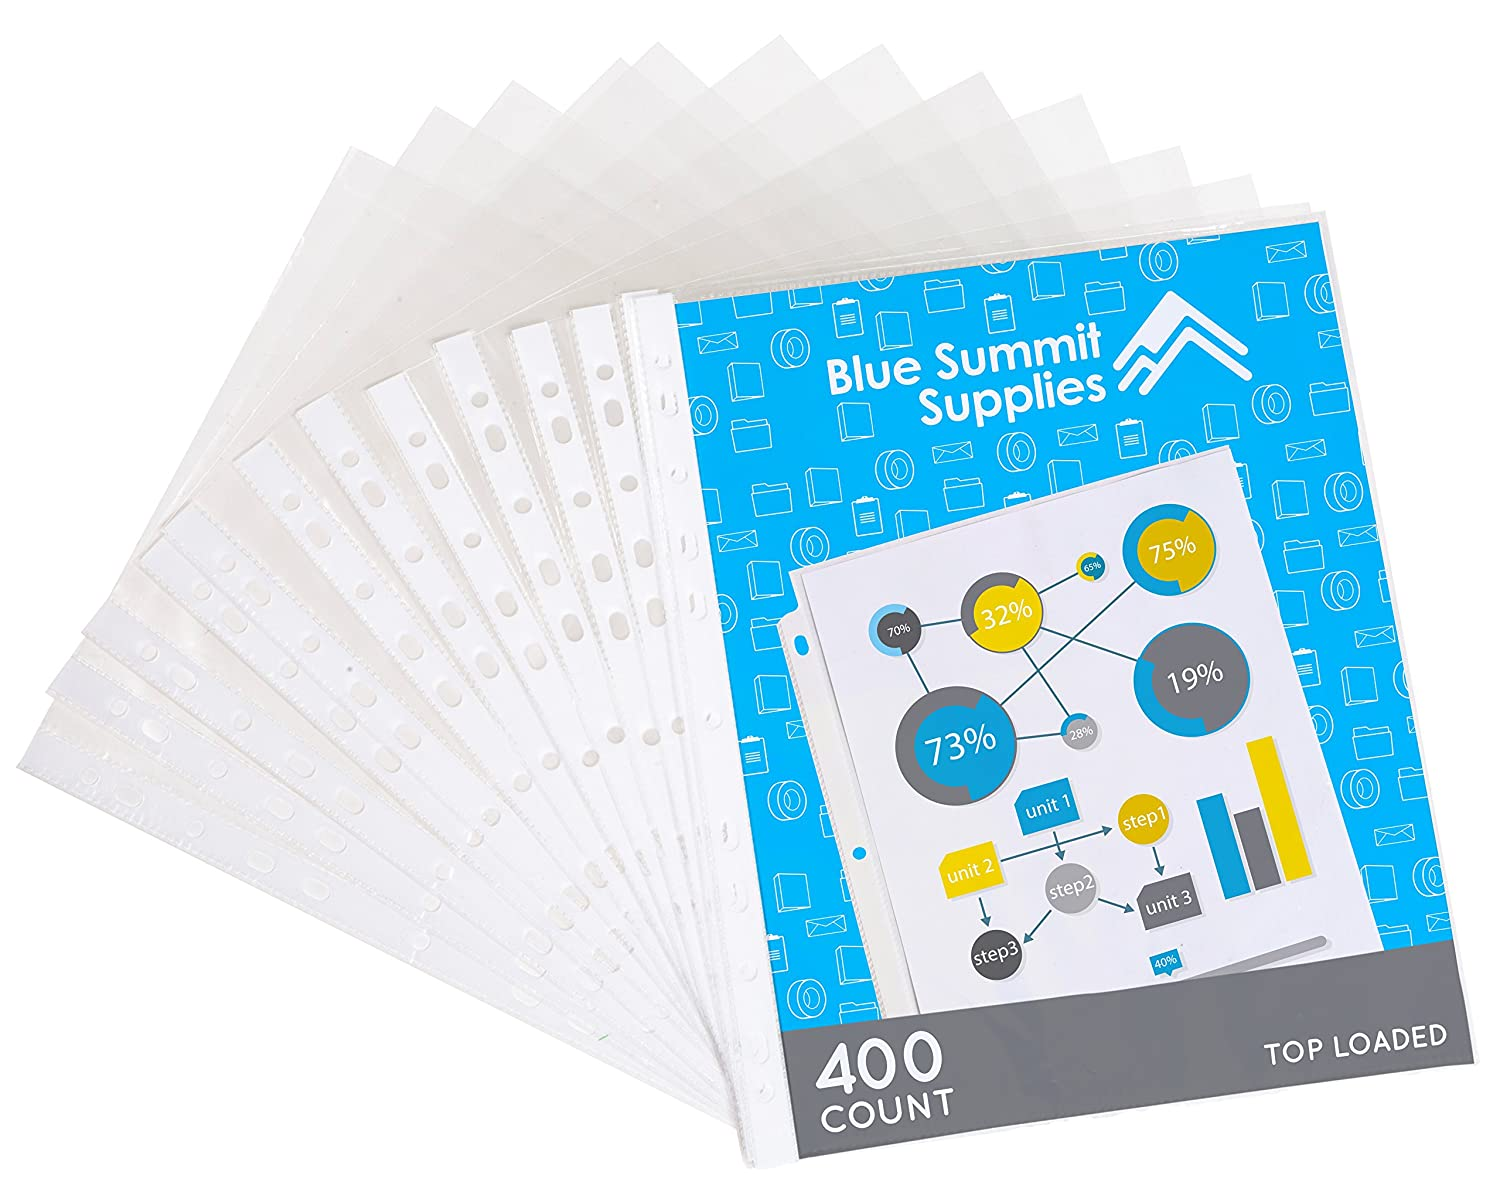 400 Sheet Protectors, 11 Hole Lightweight Binder Sleeves, Designed to Protect Frequently Used 8.5 x 11 Papers, Acid and PVC Free, Clear Design, 9.25 x 11.25 Top Loaded, 400 Pack